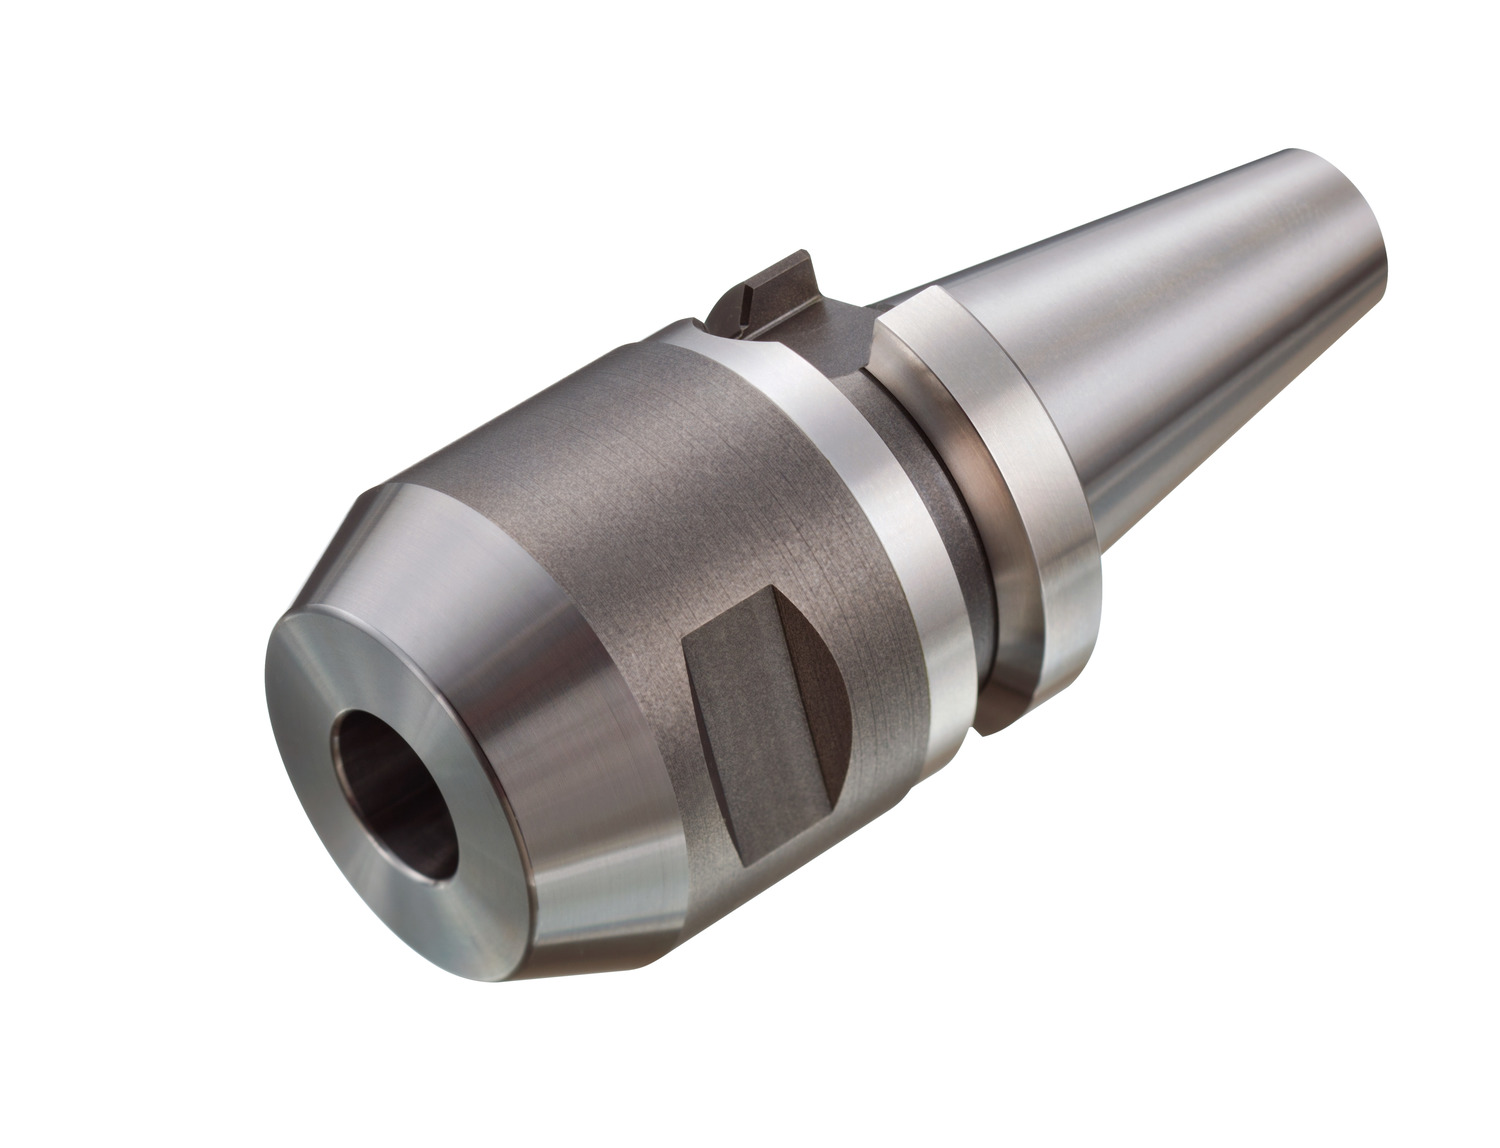 A2B20-40 32 100 - Cross System, Extension & Reducer Adapters